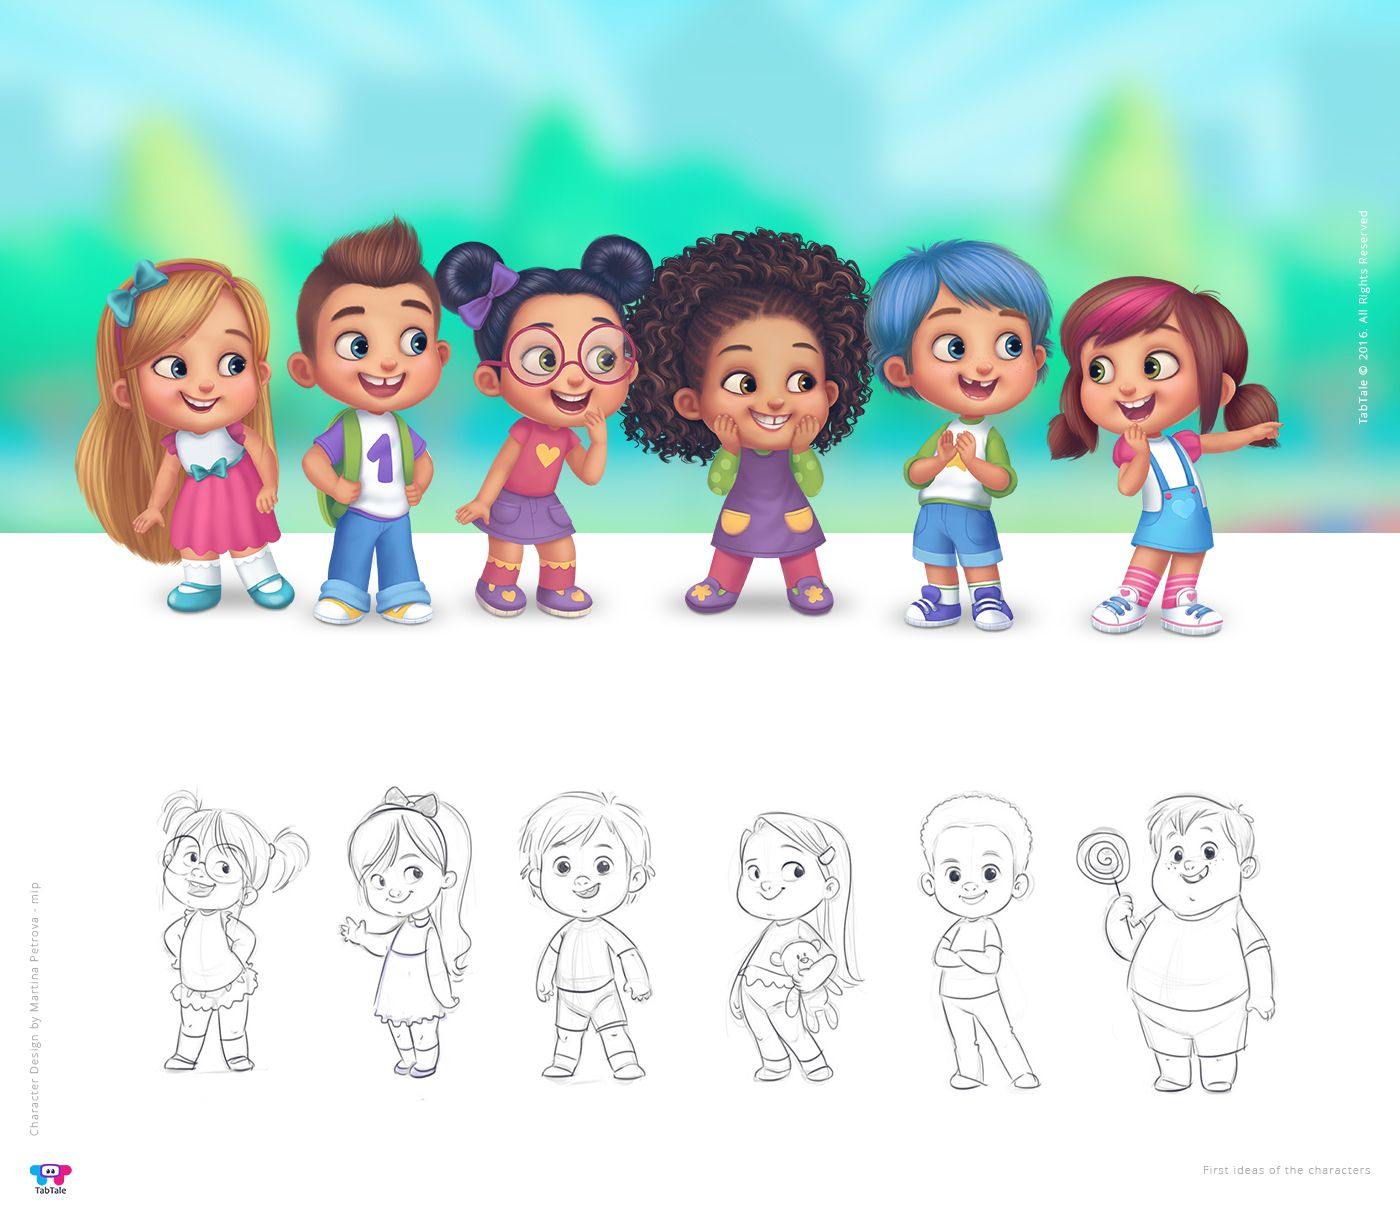 character design by martina petrova mip for www tabtale com